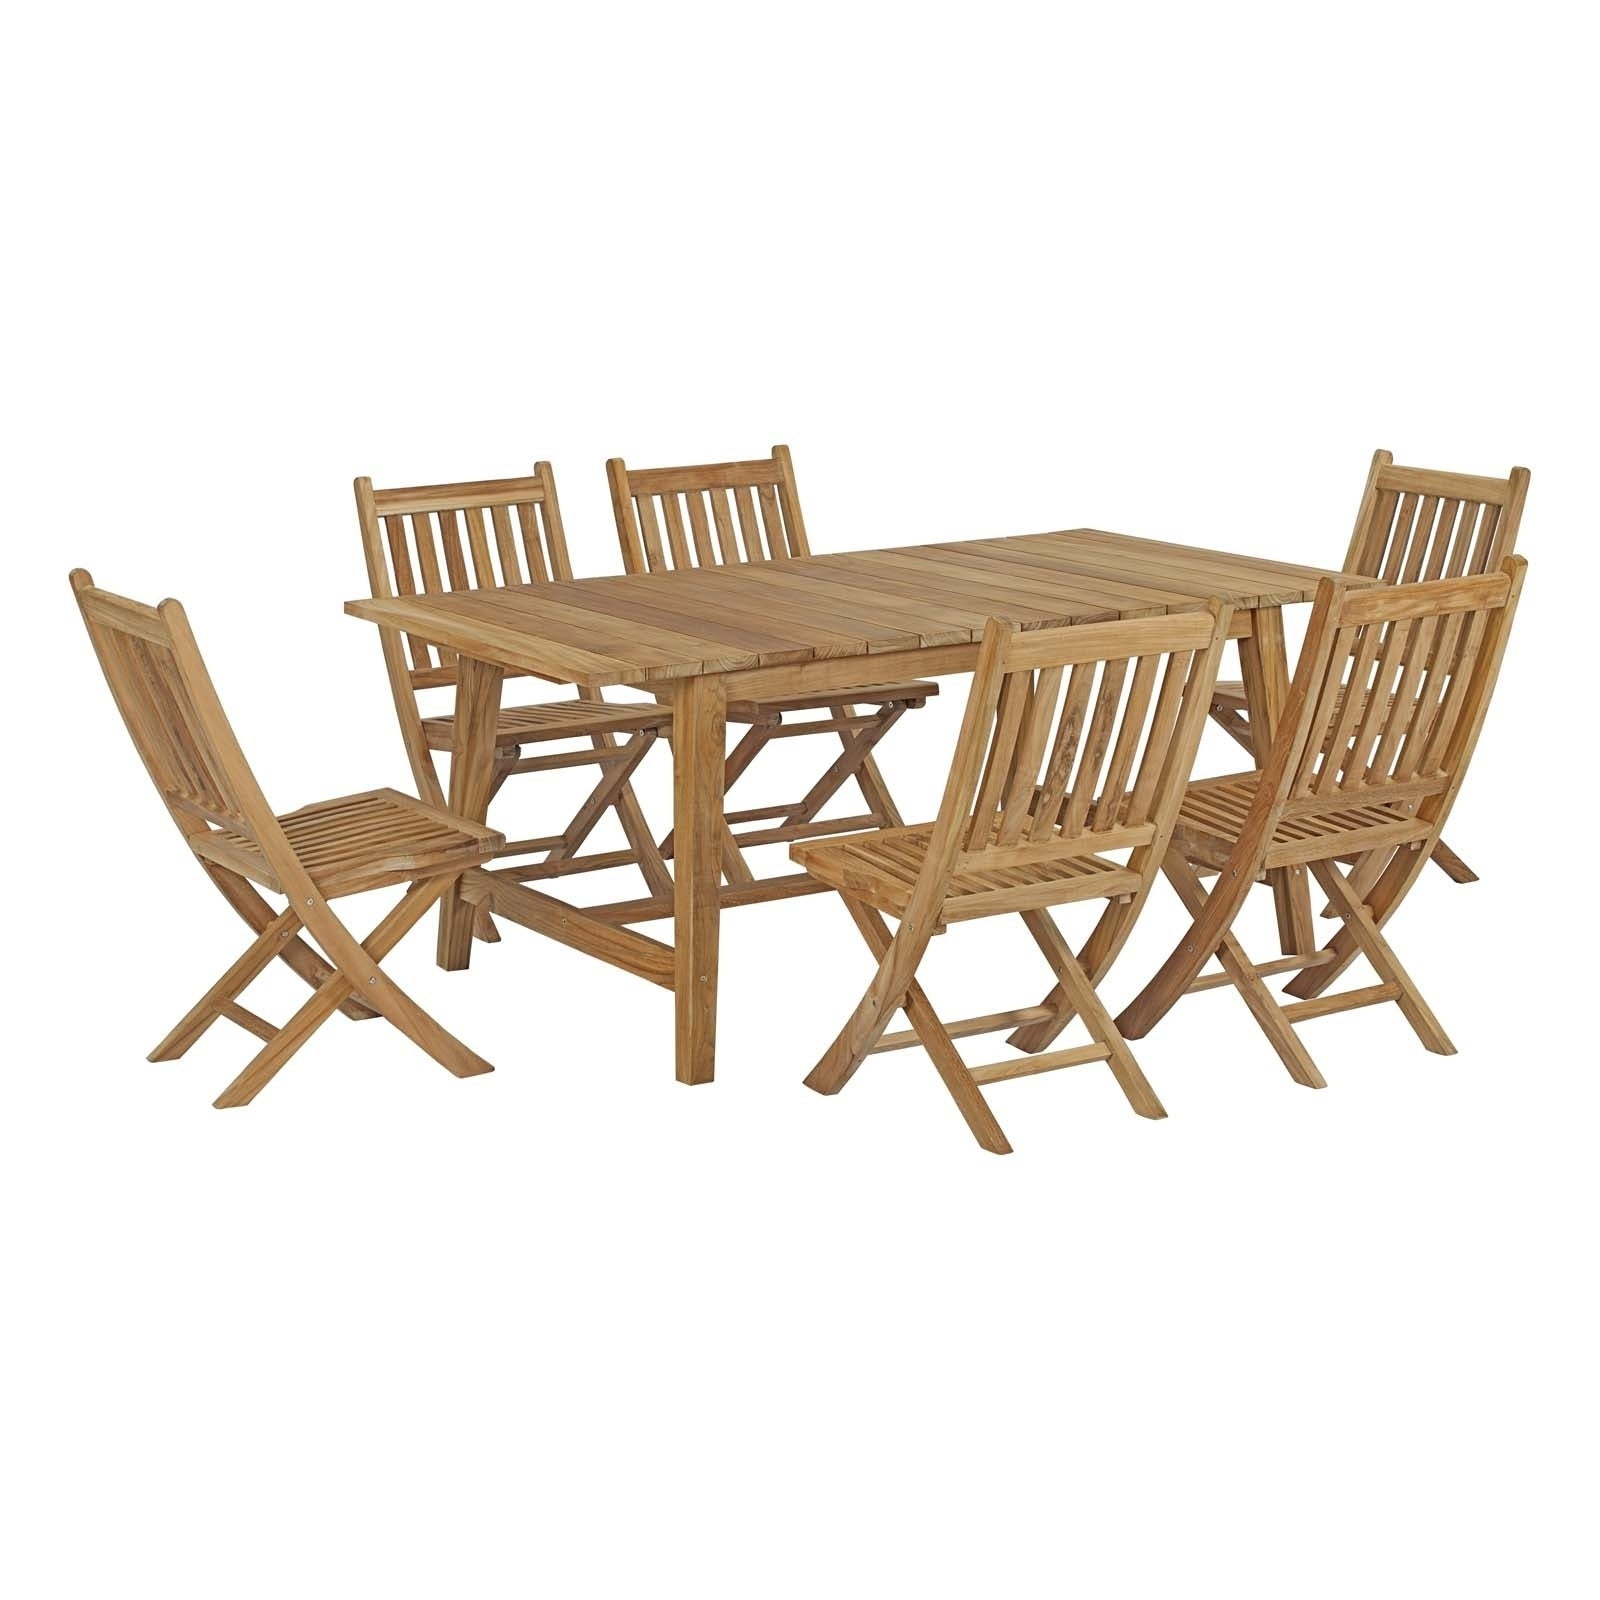 Havenside Home Pocasset 7-piece Patio Teak Outdoor Dining Set